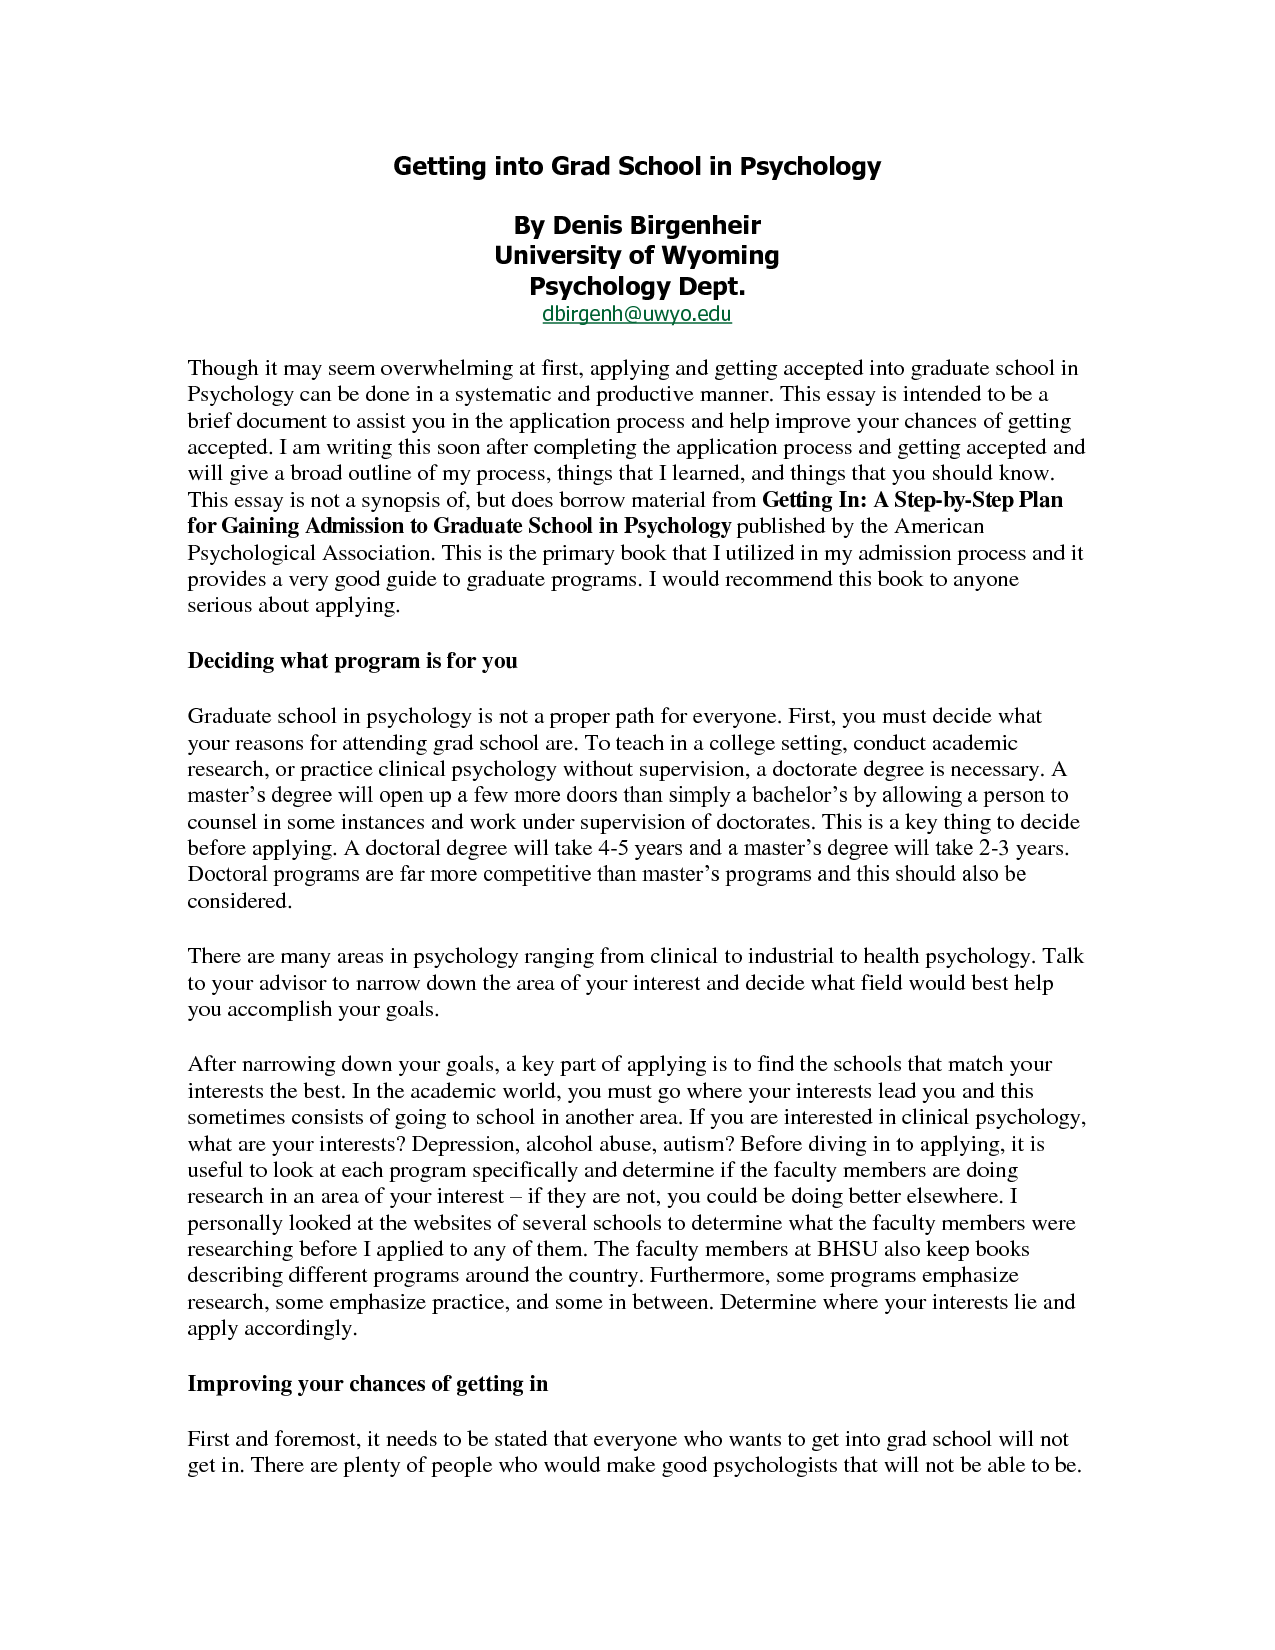 Custom university admission essay how to write